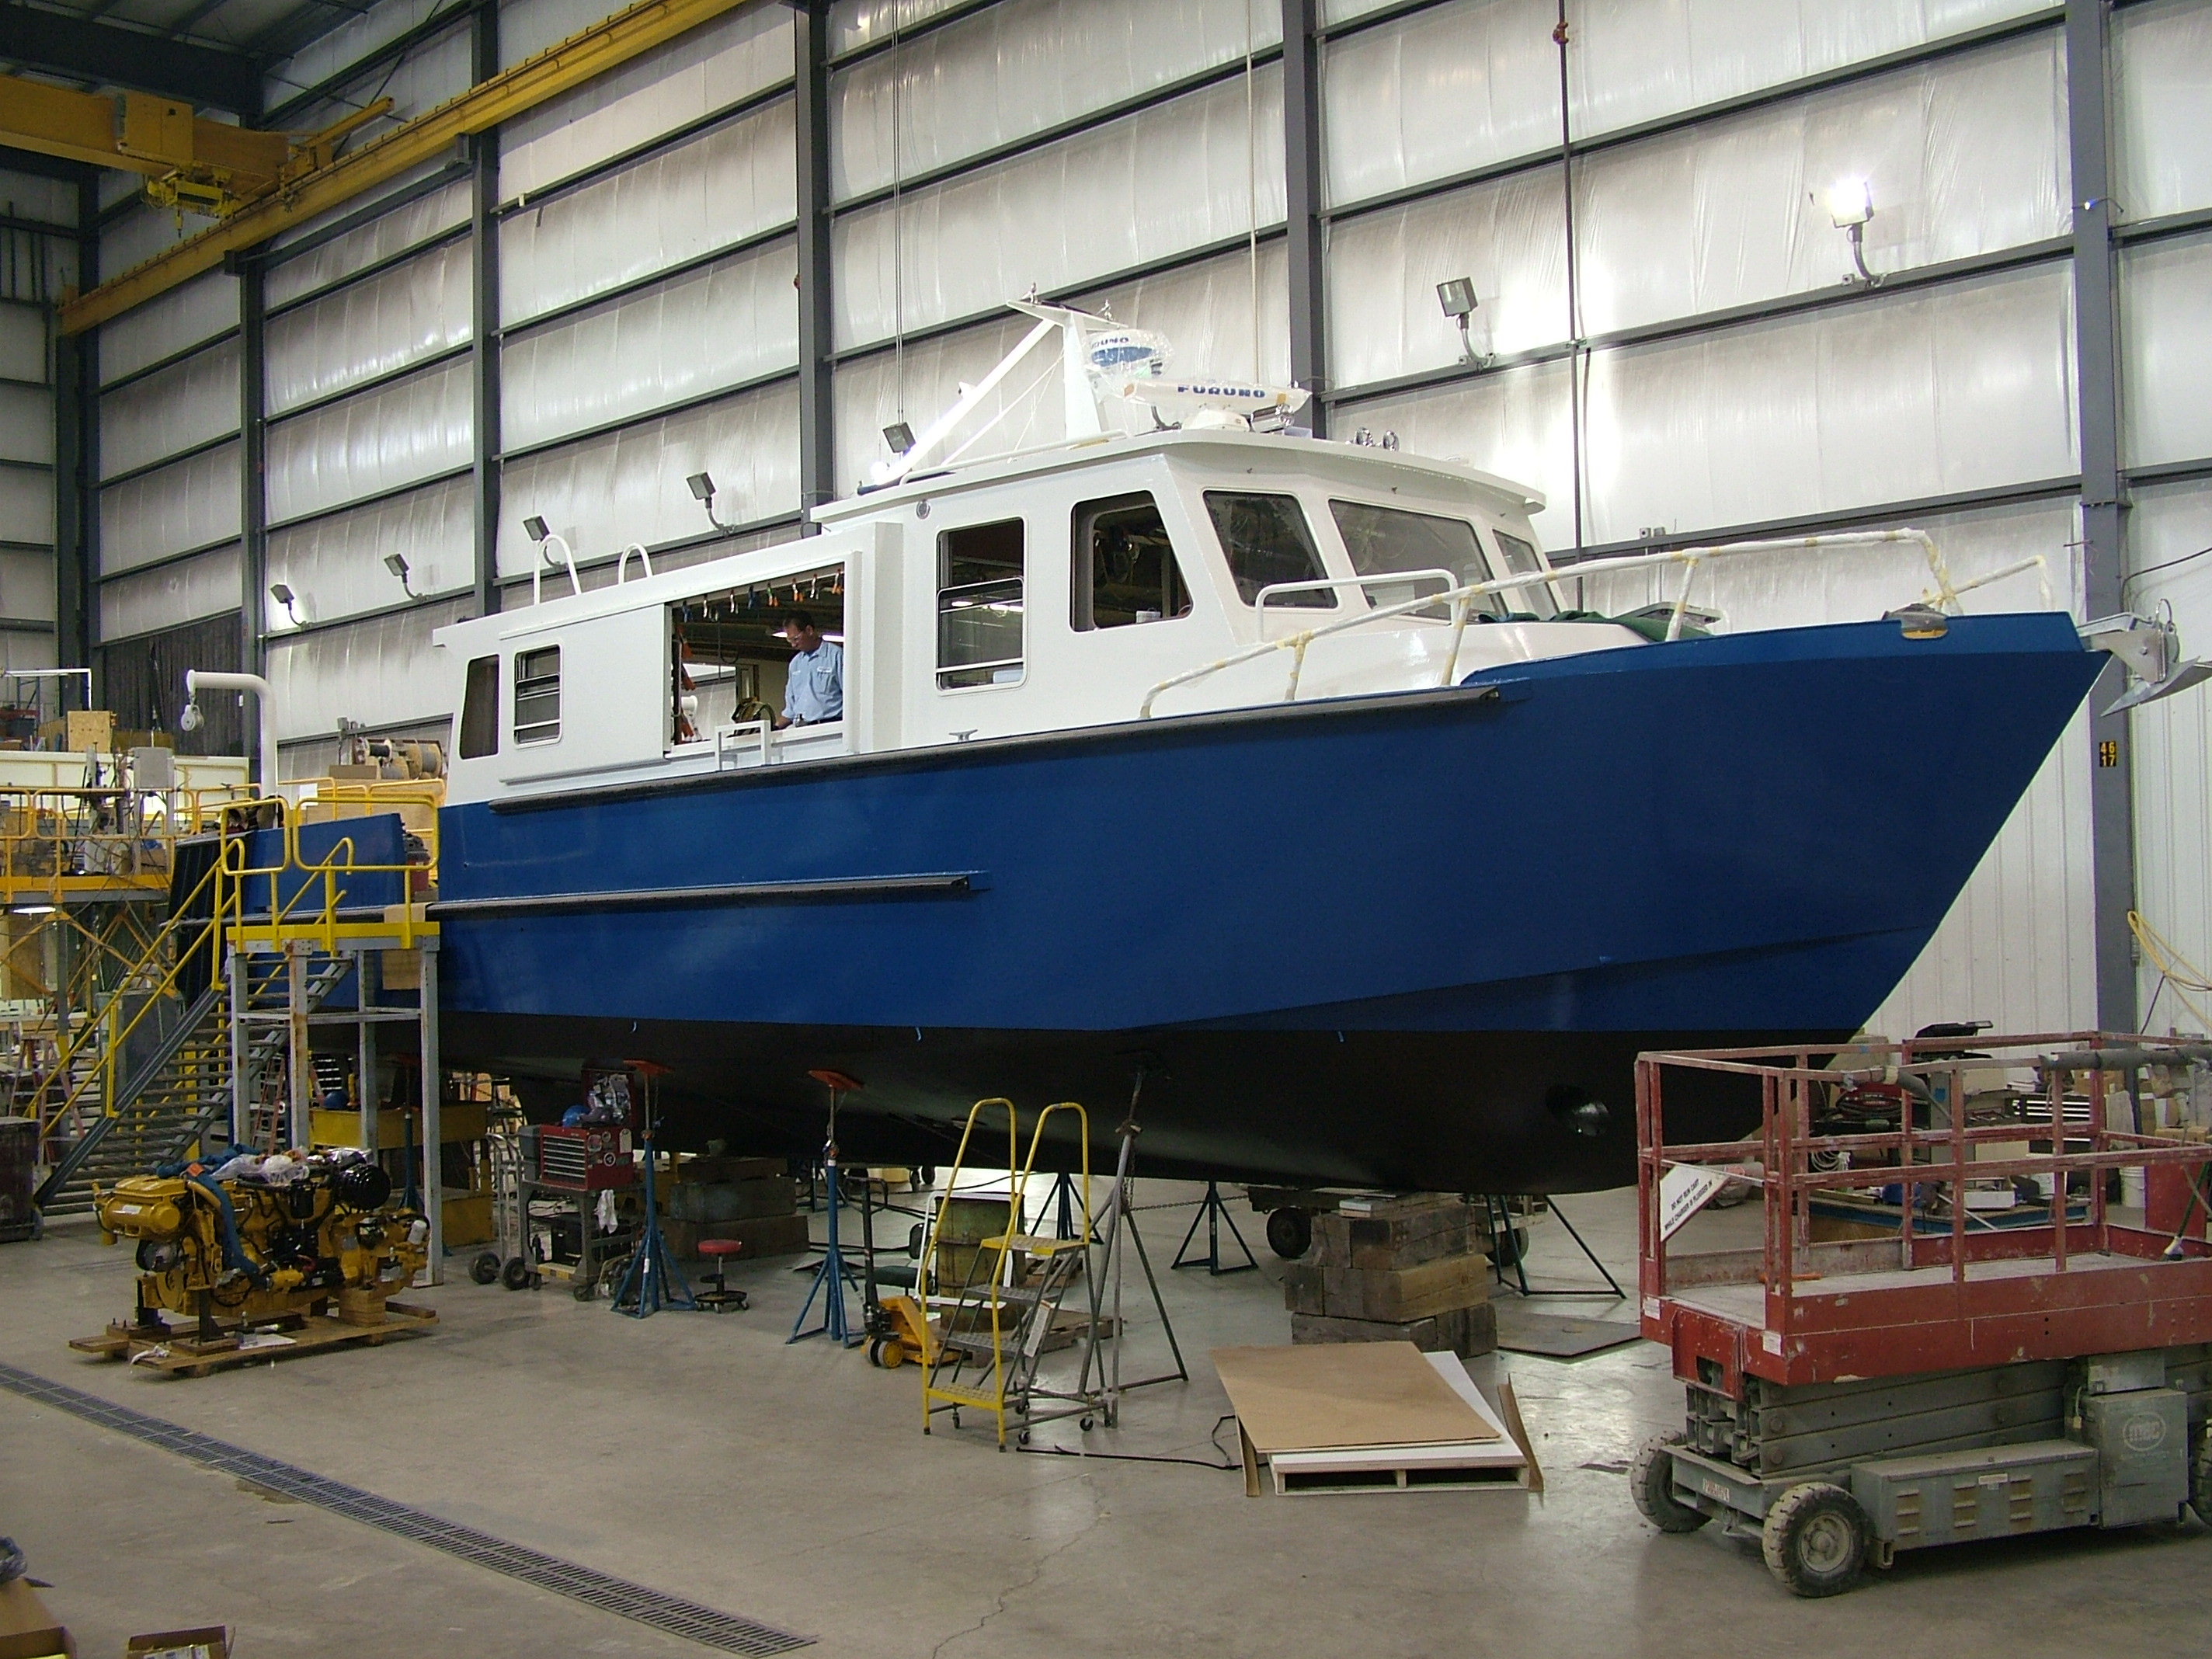 Coregonus Replaces Oldest Great Lakes Research Vessel